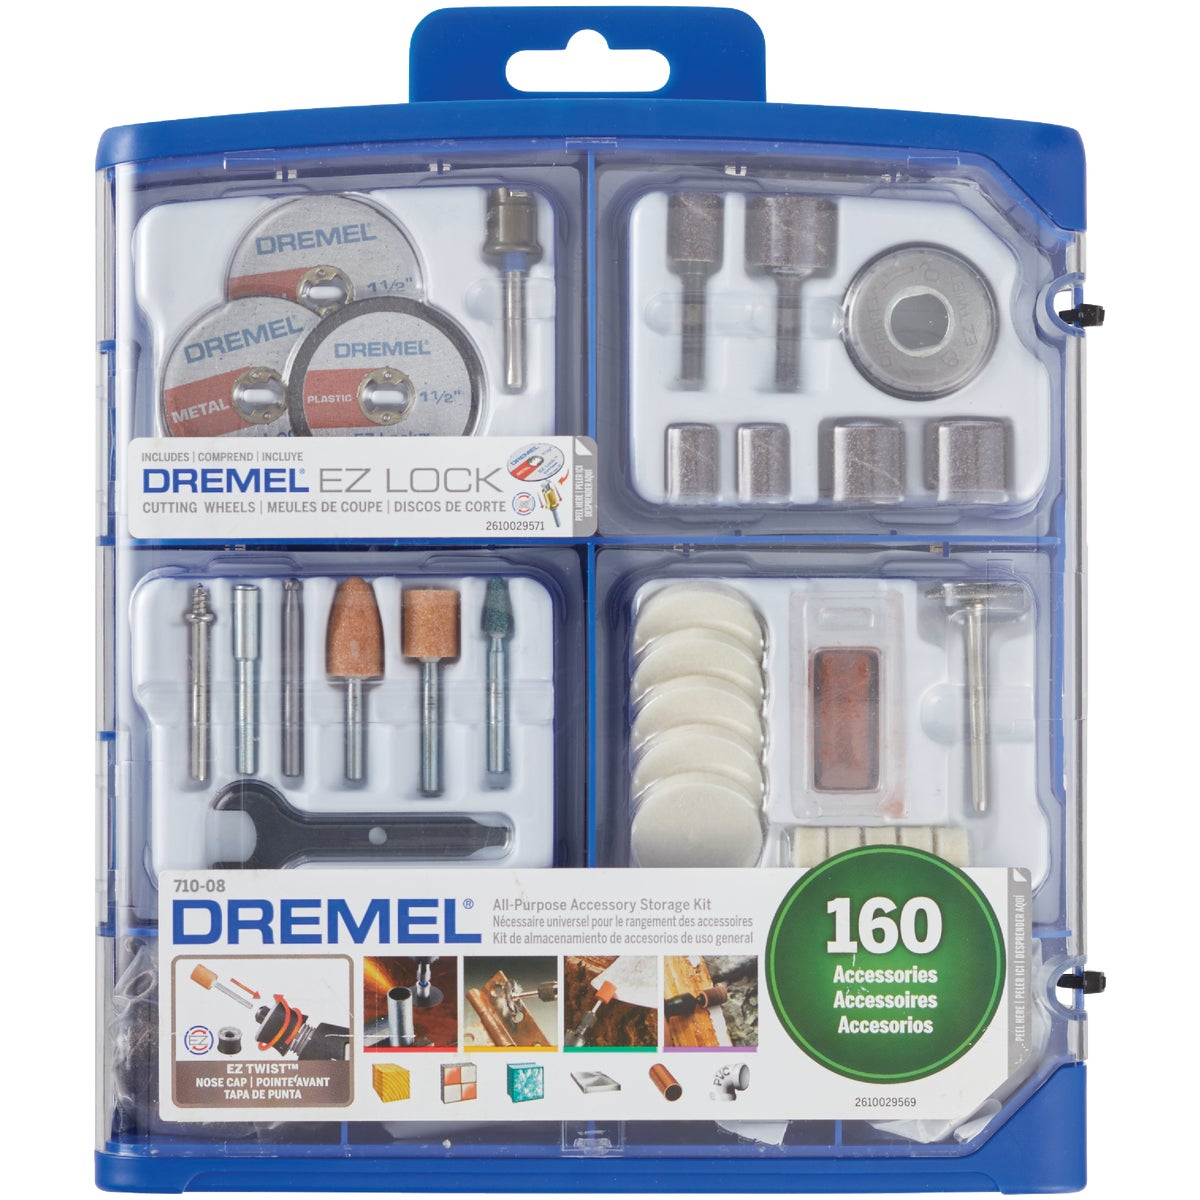 160PC MEGA ACCESSORY KIT - 710-05 by Dremel Mfg Co